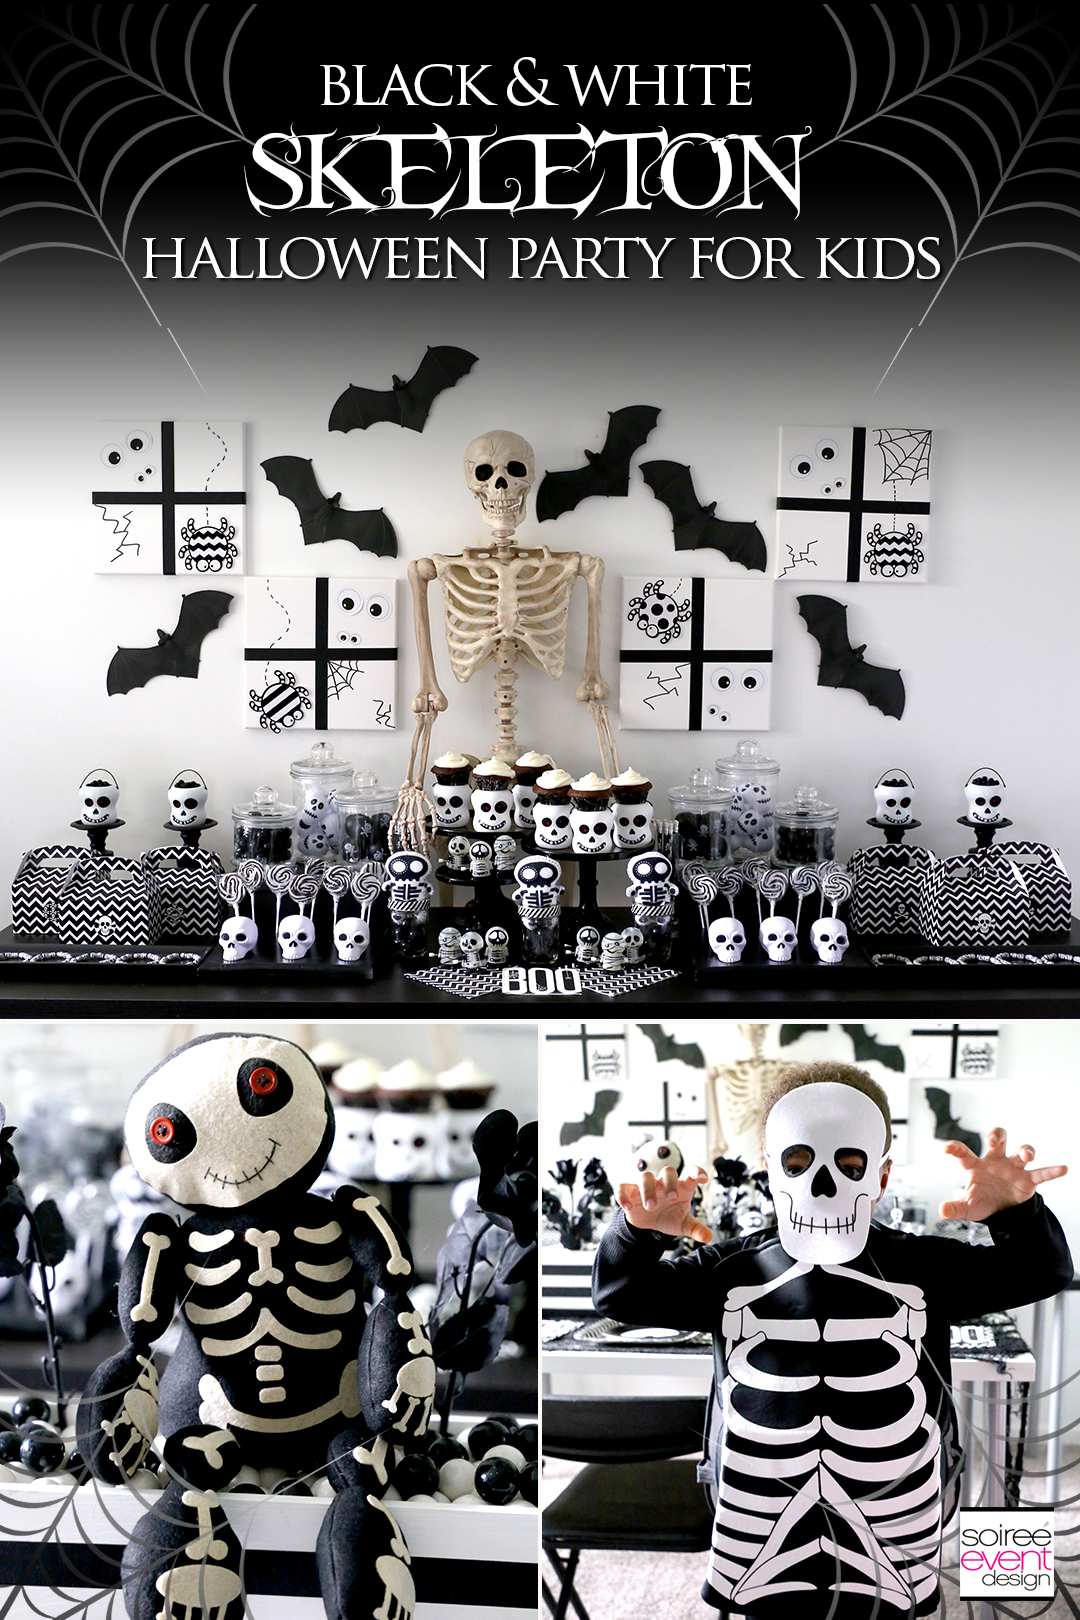 Black and White Skeleton Halloween Party for Kids